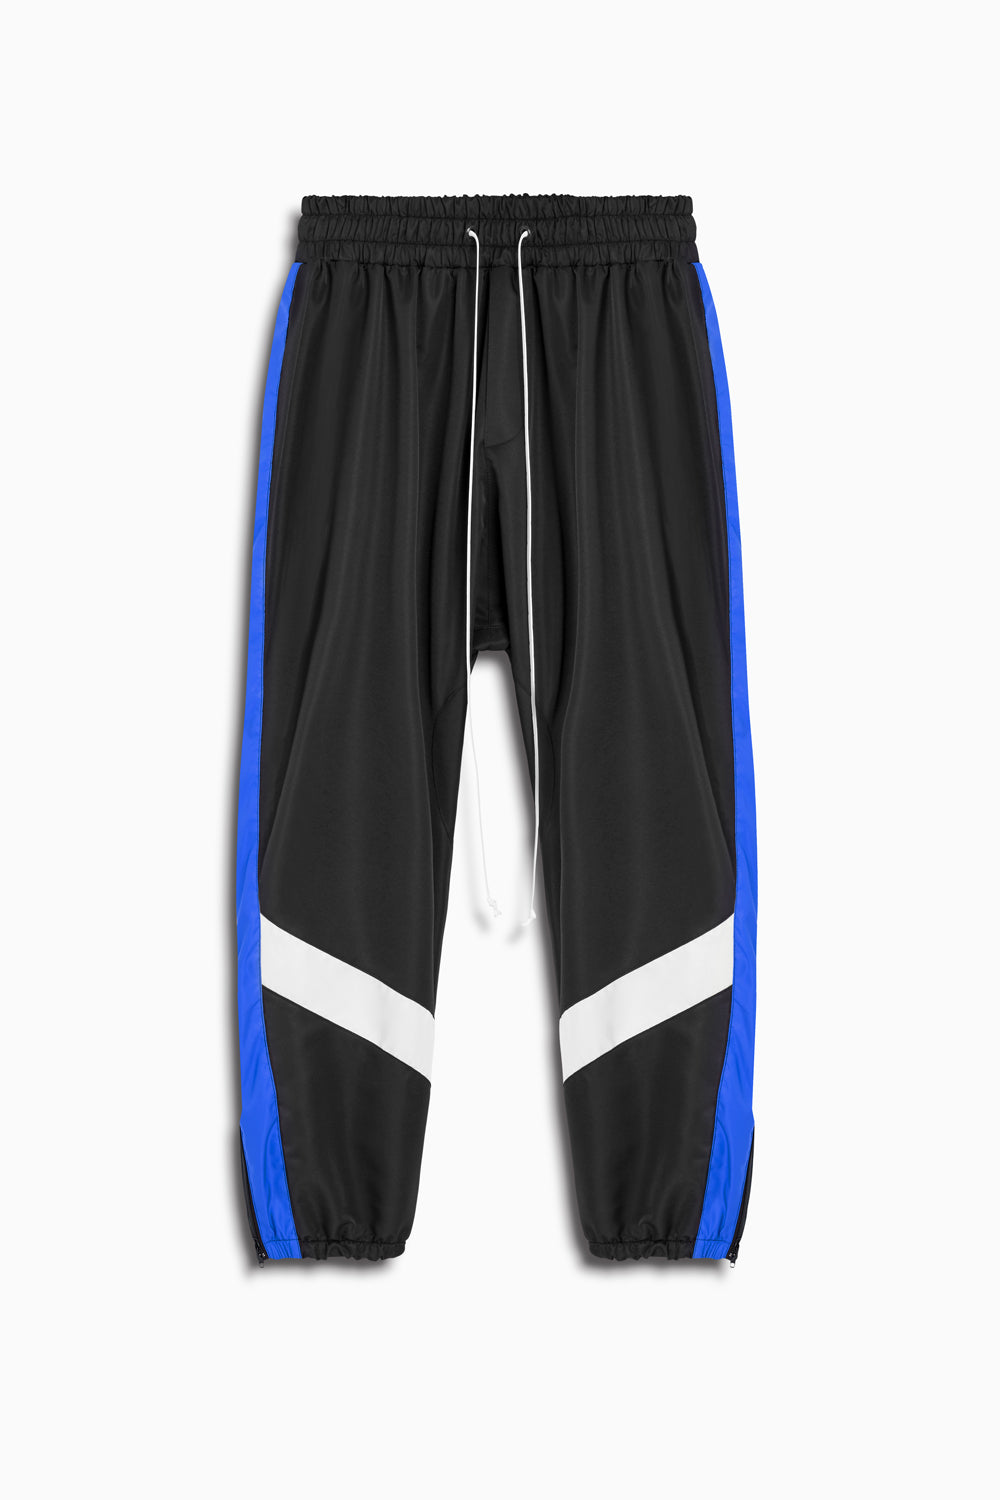 parachute track pant ii in black/cobalt/ivory by daniel patrick